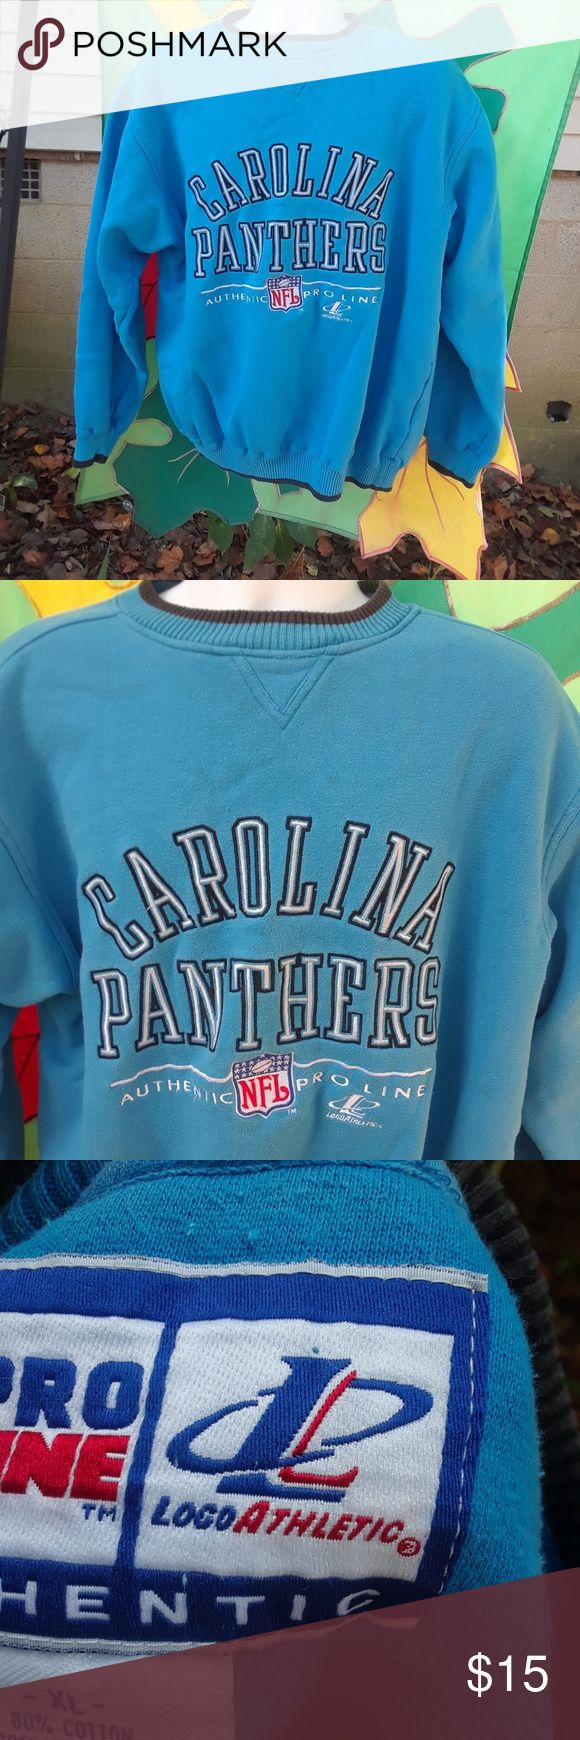 Caroline Panthers men's Sweat Shirt size X-large This is a used NFL Pro Line Authentic Caroline Panthers men's Sweat Shirt size X-large,it is blue and black,there are no holes or tears or stains,Please view the pictures and if you have any questions please ask. Pro Line Authentic Shirts Sweatshirts & Hoodies